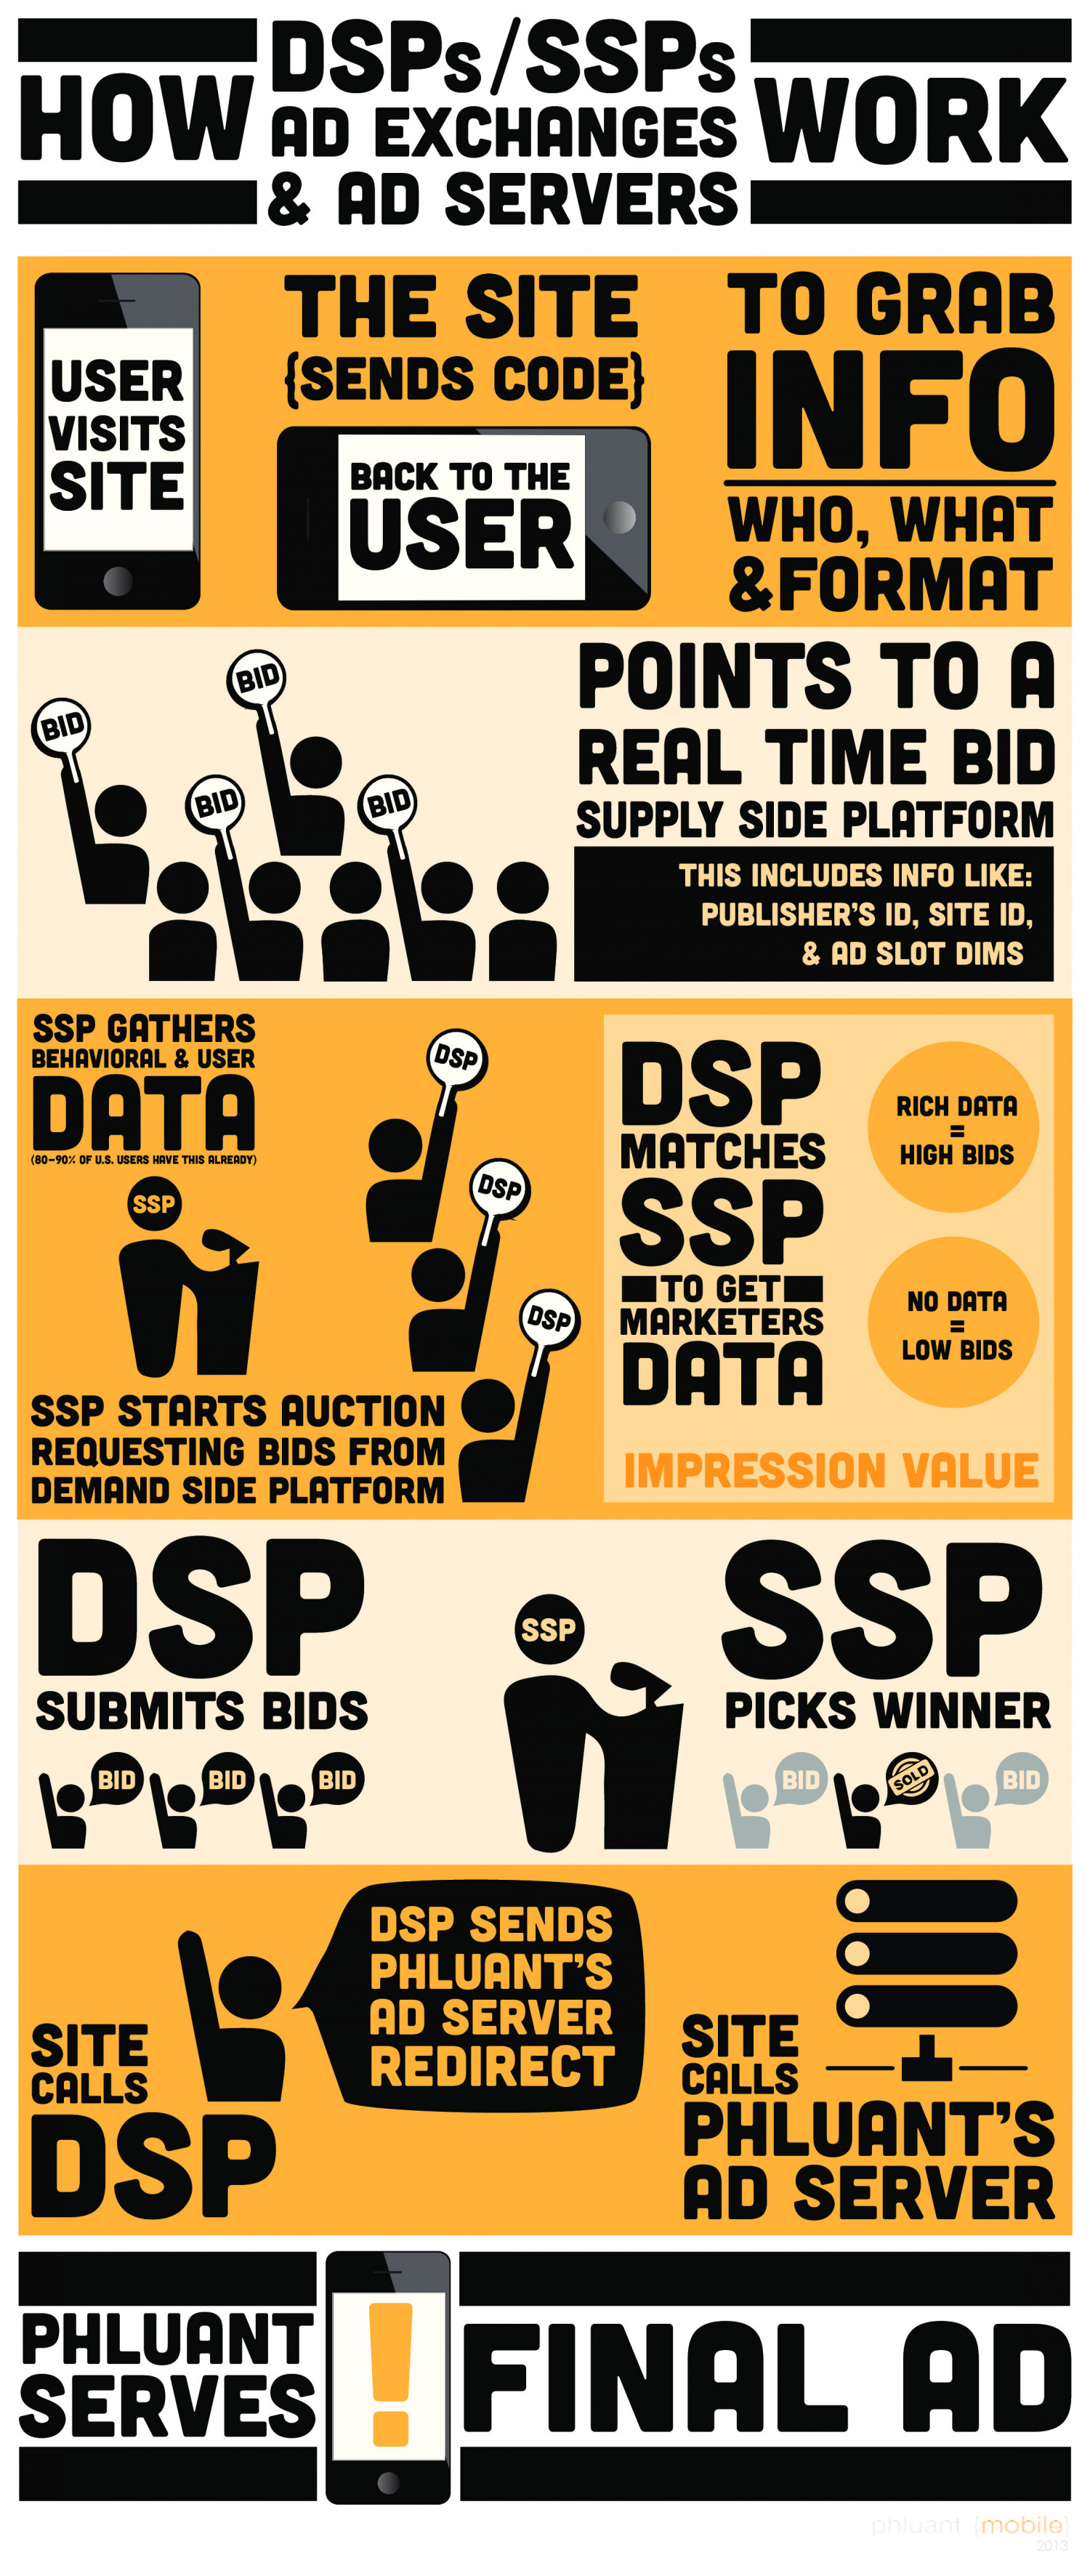 How DSPs, SSP, Ad Exchanges & Ad Servers Work Infographic